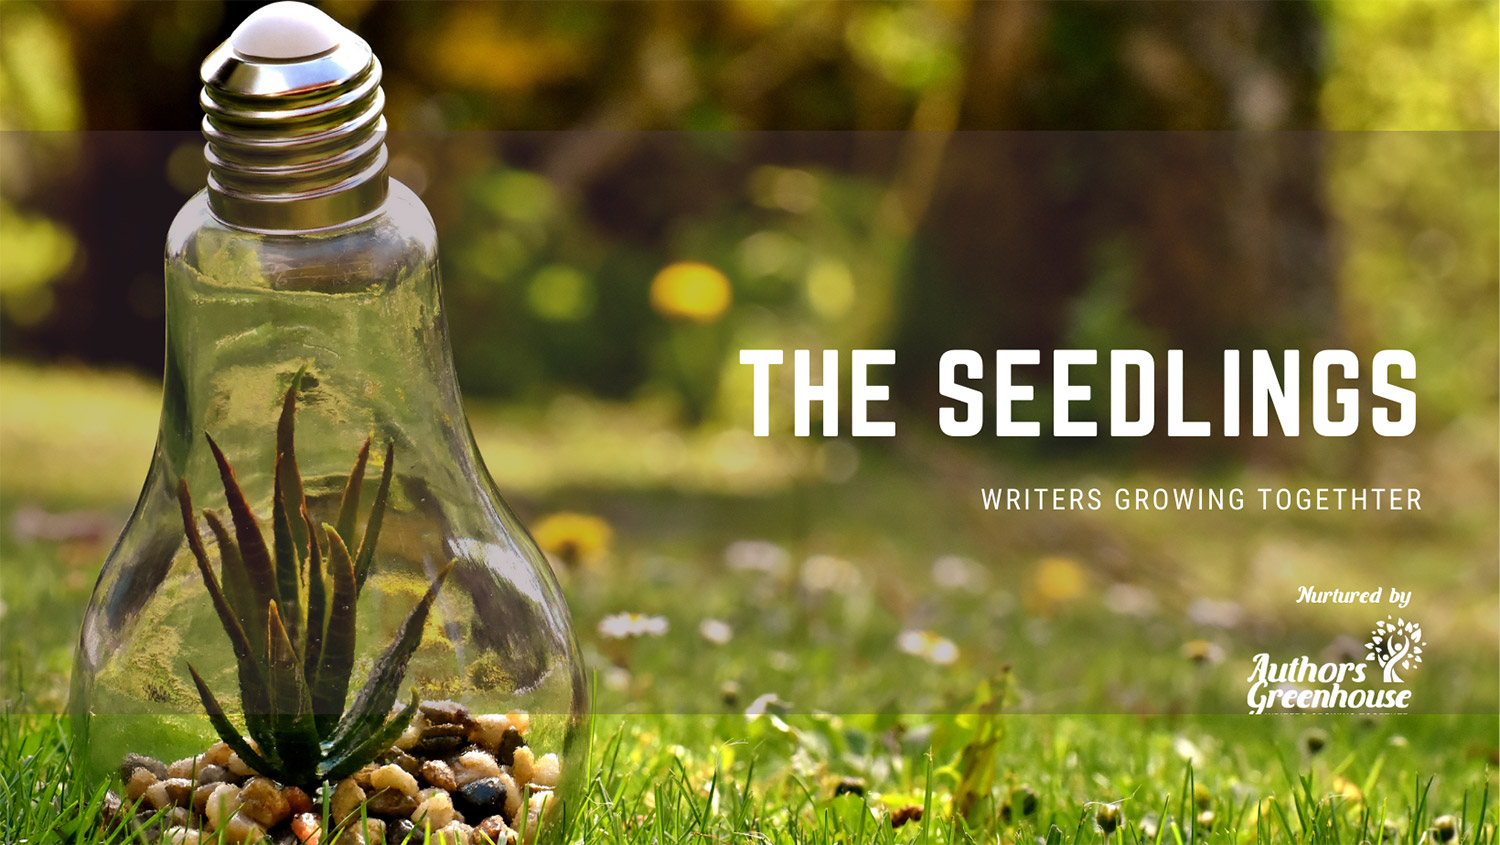 The Seedlings: Writers Growing Together